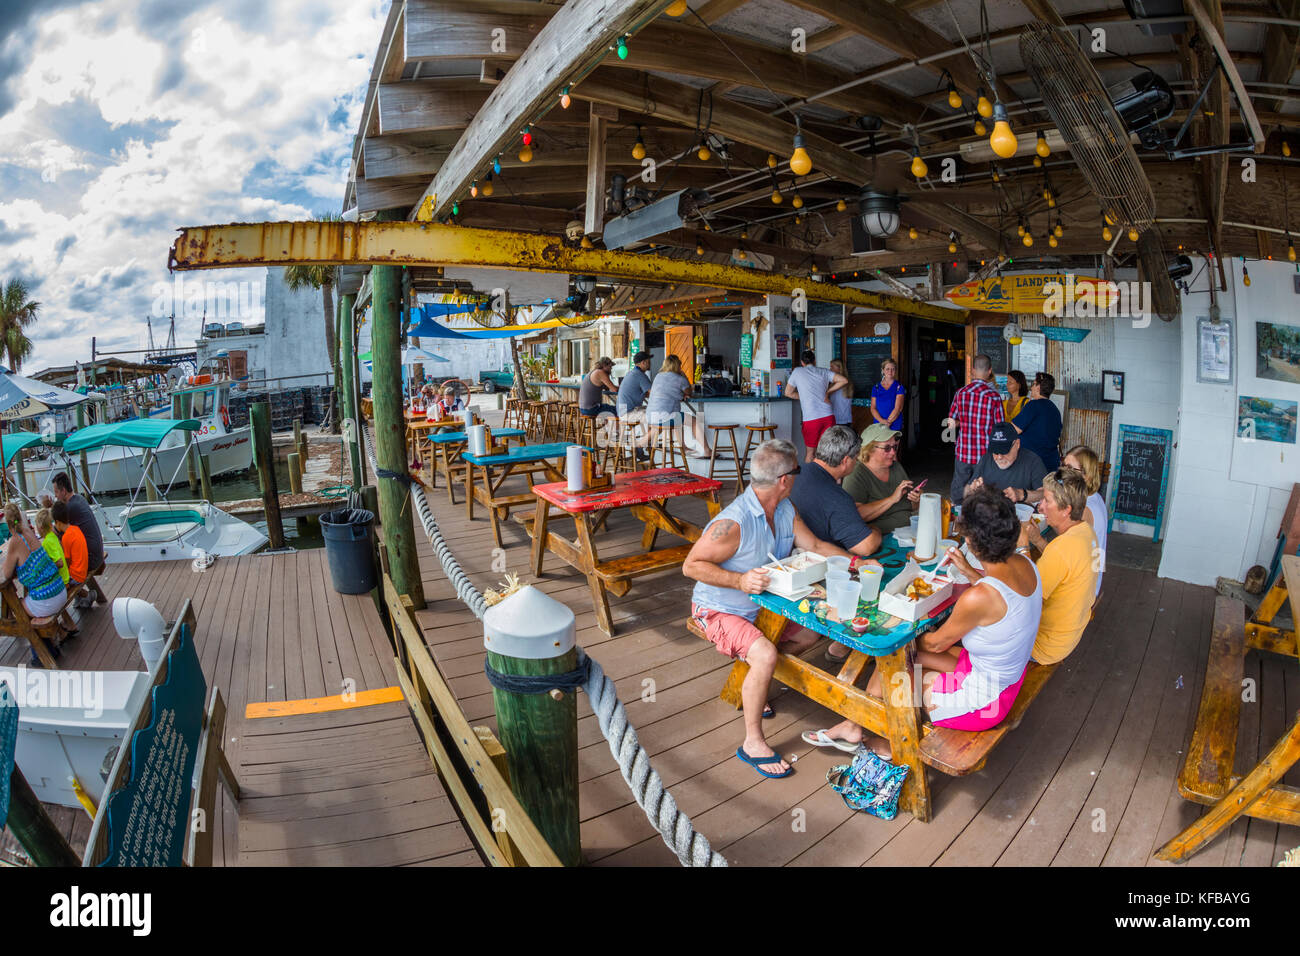 Dockside restaurant stock photos dockside restaurant for Village fish market